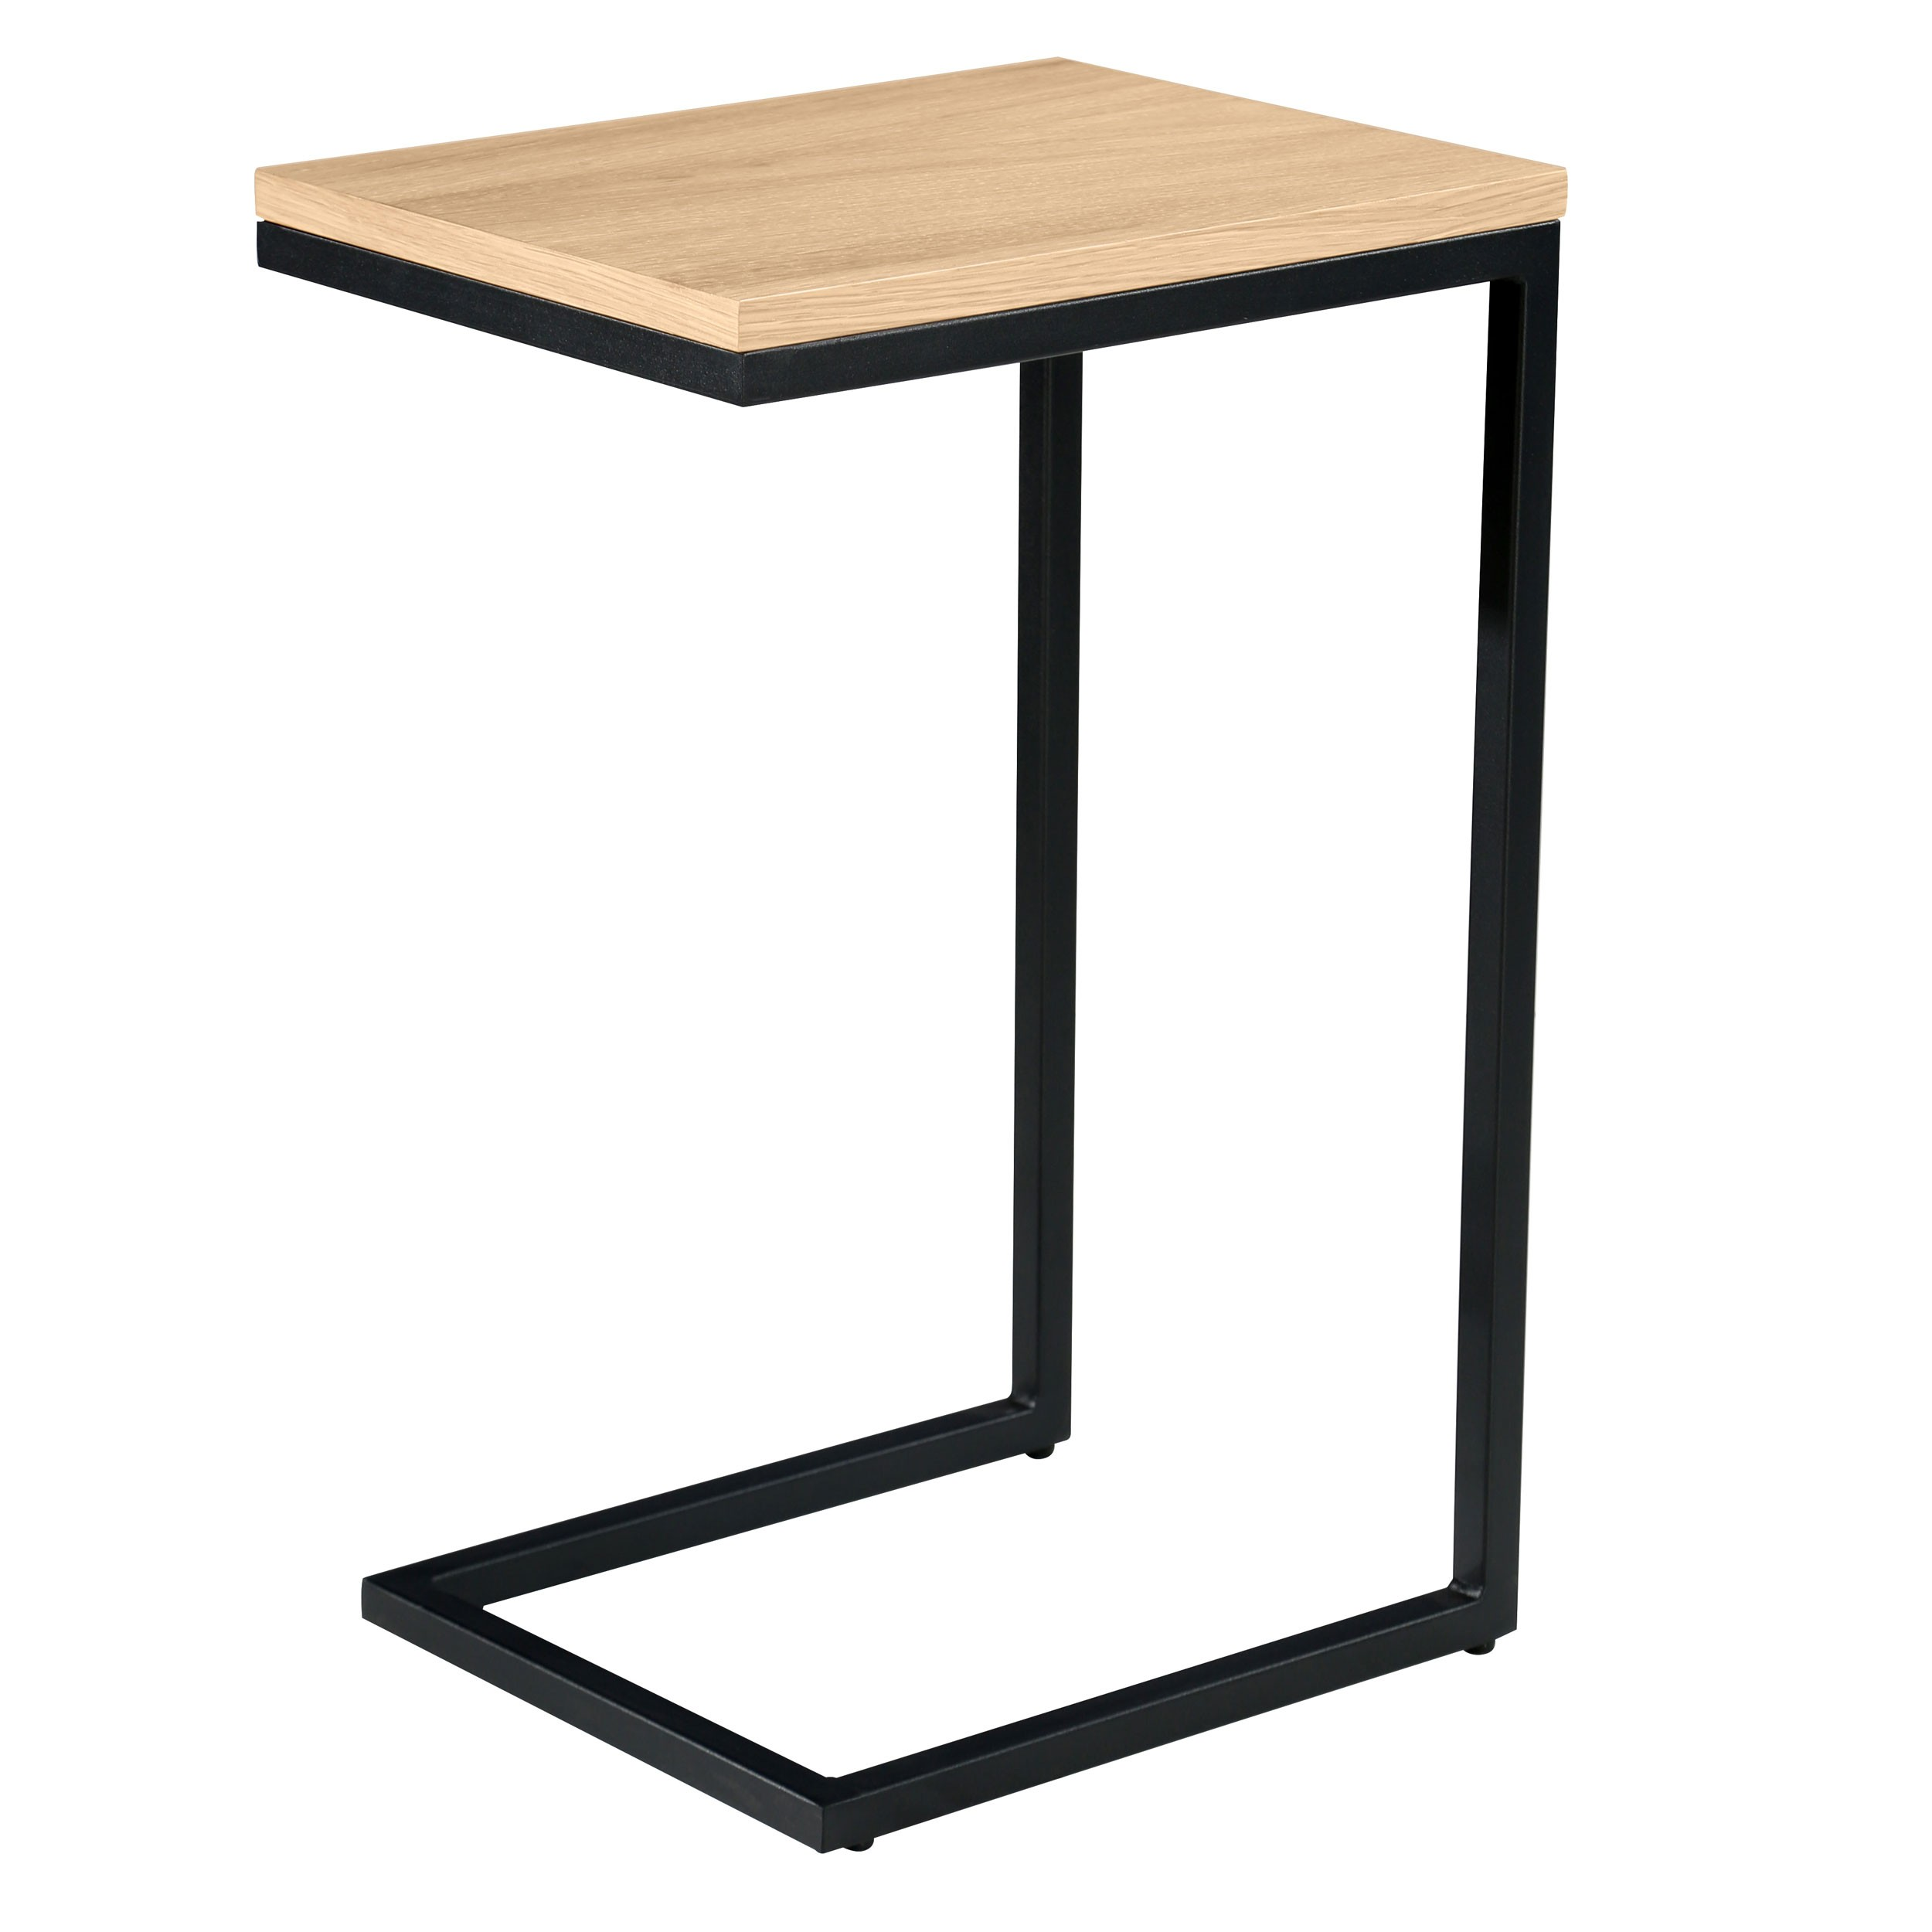 Table D'appoint Pliante Castorama Table D 39appoint Carrée Kavu Achetez Les Tables D 39appoint